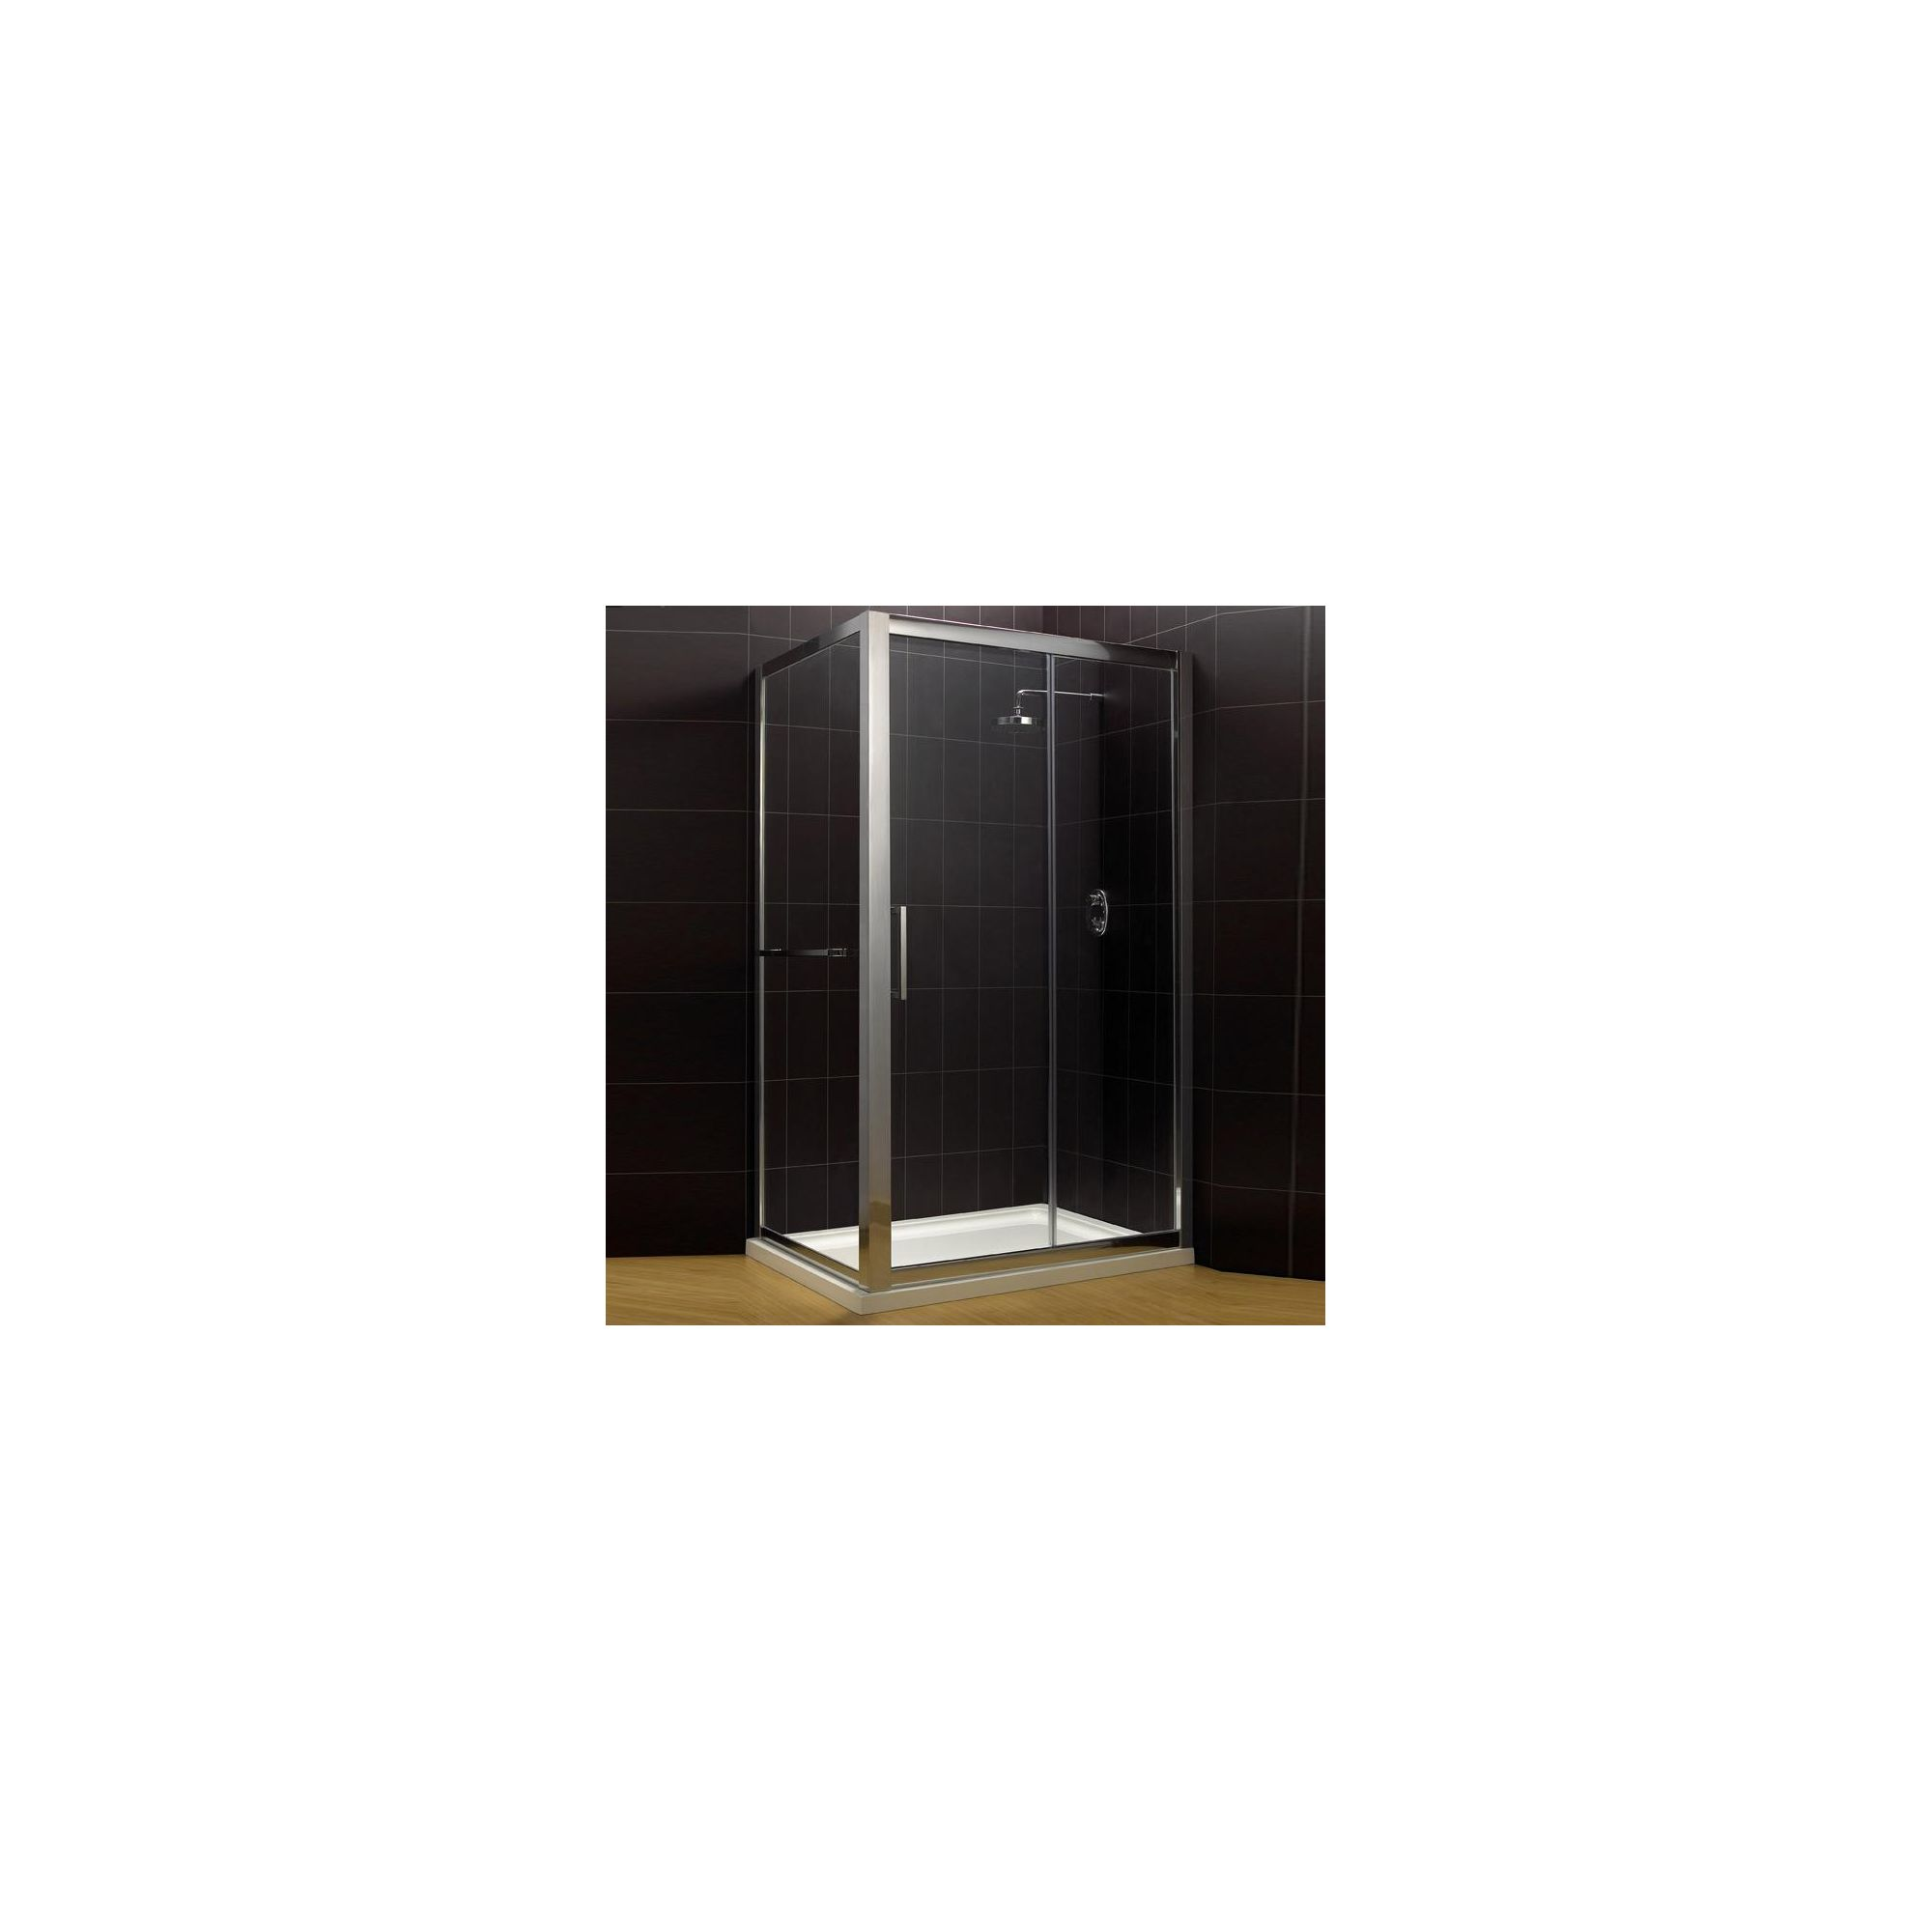 Duchy Supreme Silver Sliding Door Shower Enclosure, 1600mm x 800mm, Standard Tray, 8mm Glass at Tesco Direct